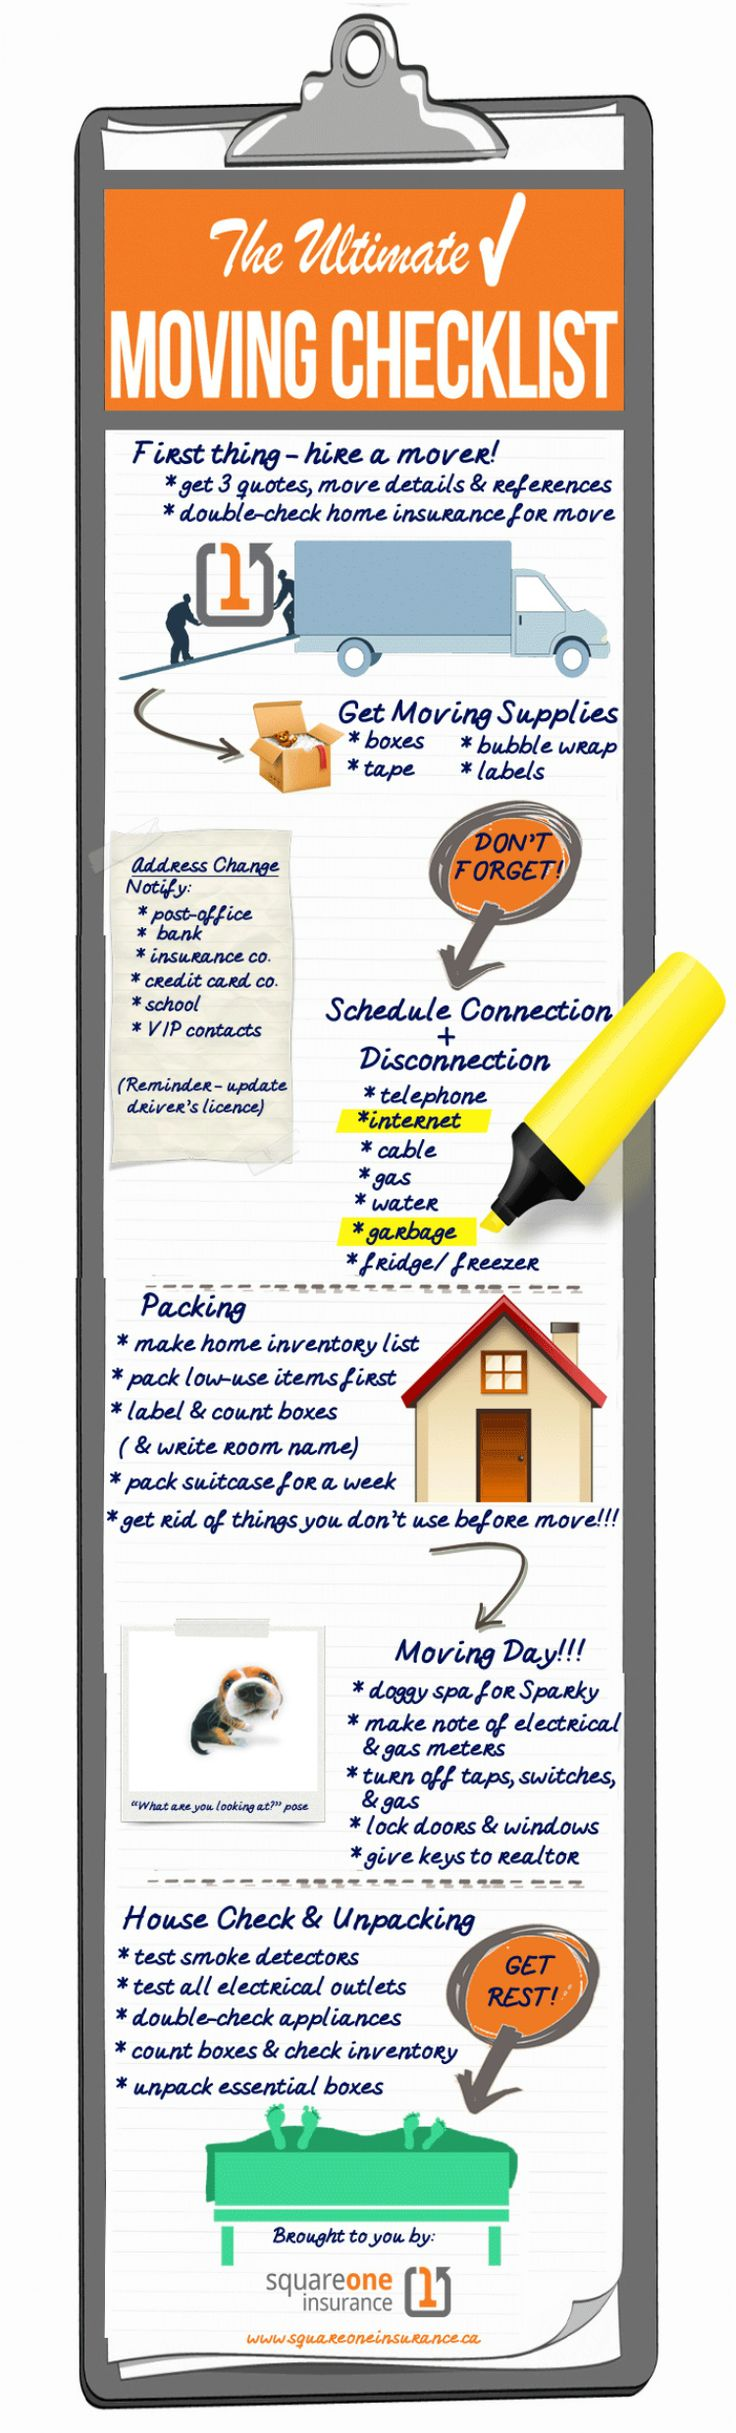 The Ultimate Moving Checklist Infographic consider changing your subject